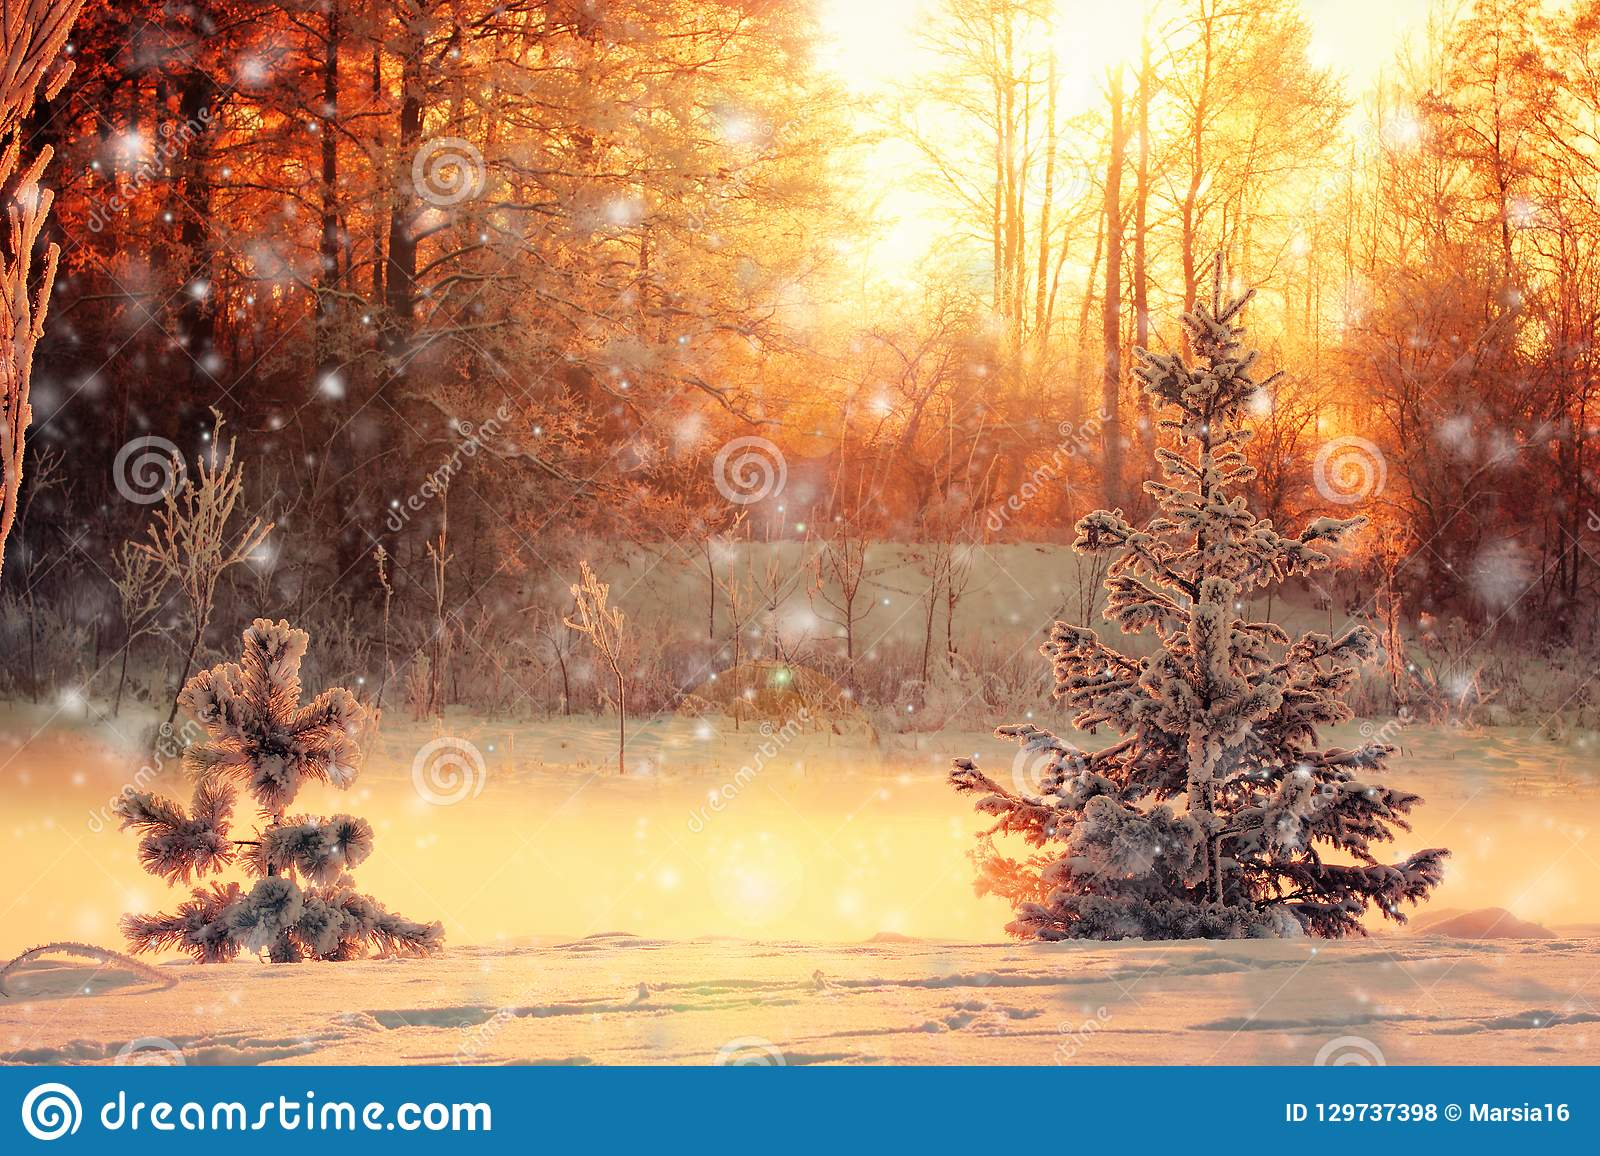 Winter landscape with a small pine and spruce